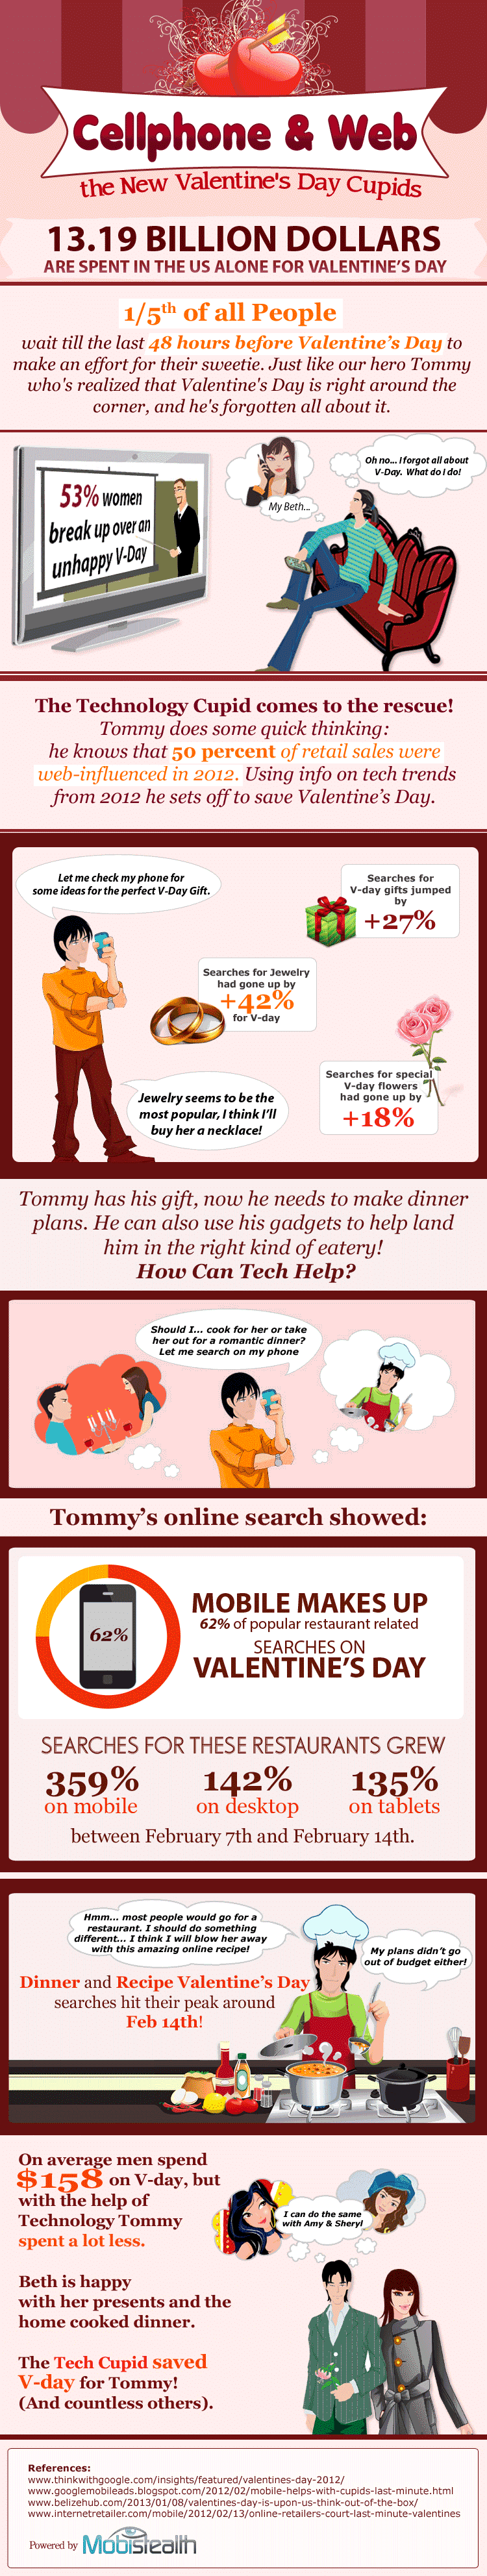 How Americans Use Technology to Plan Valentine's Day